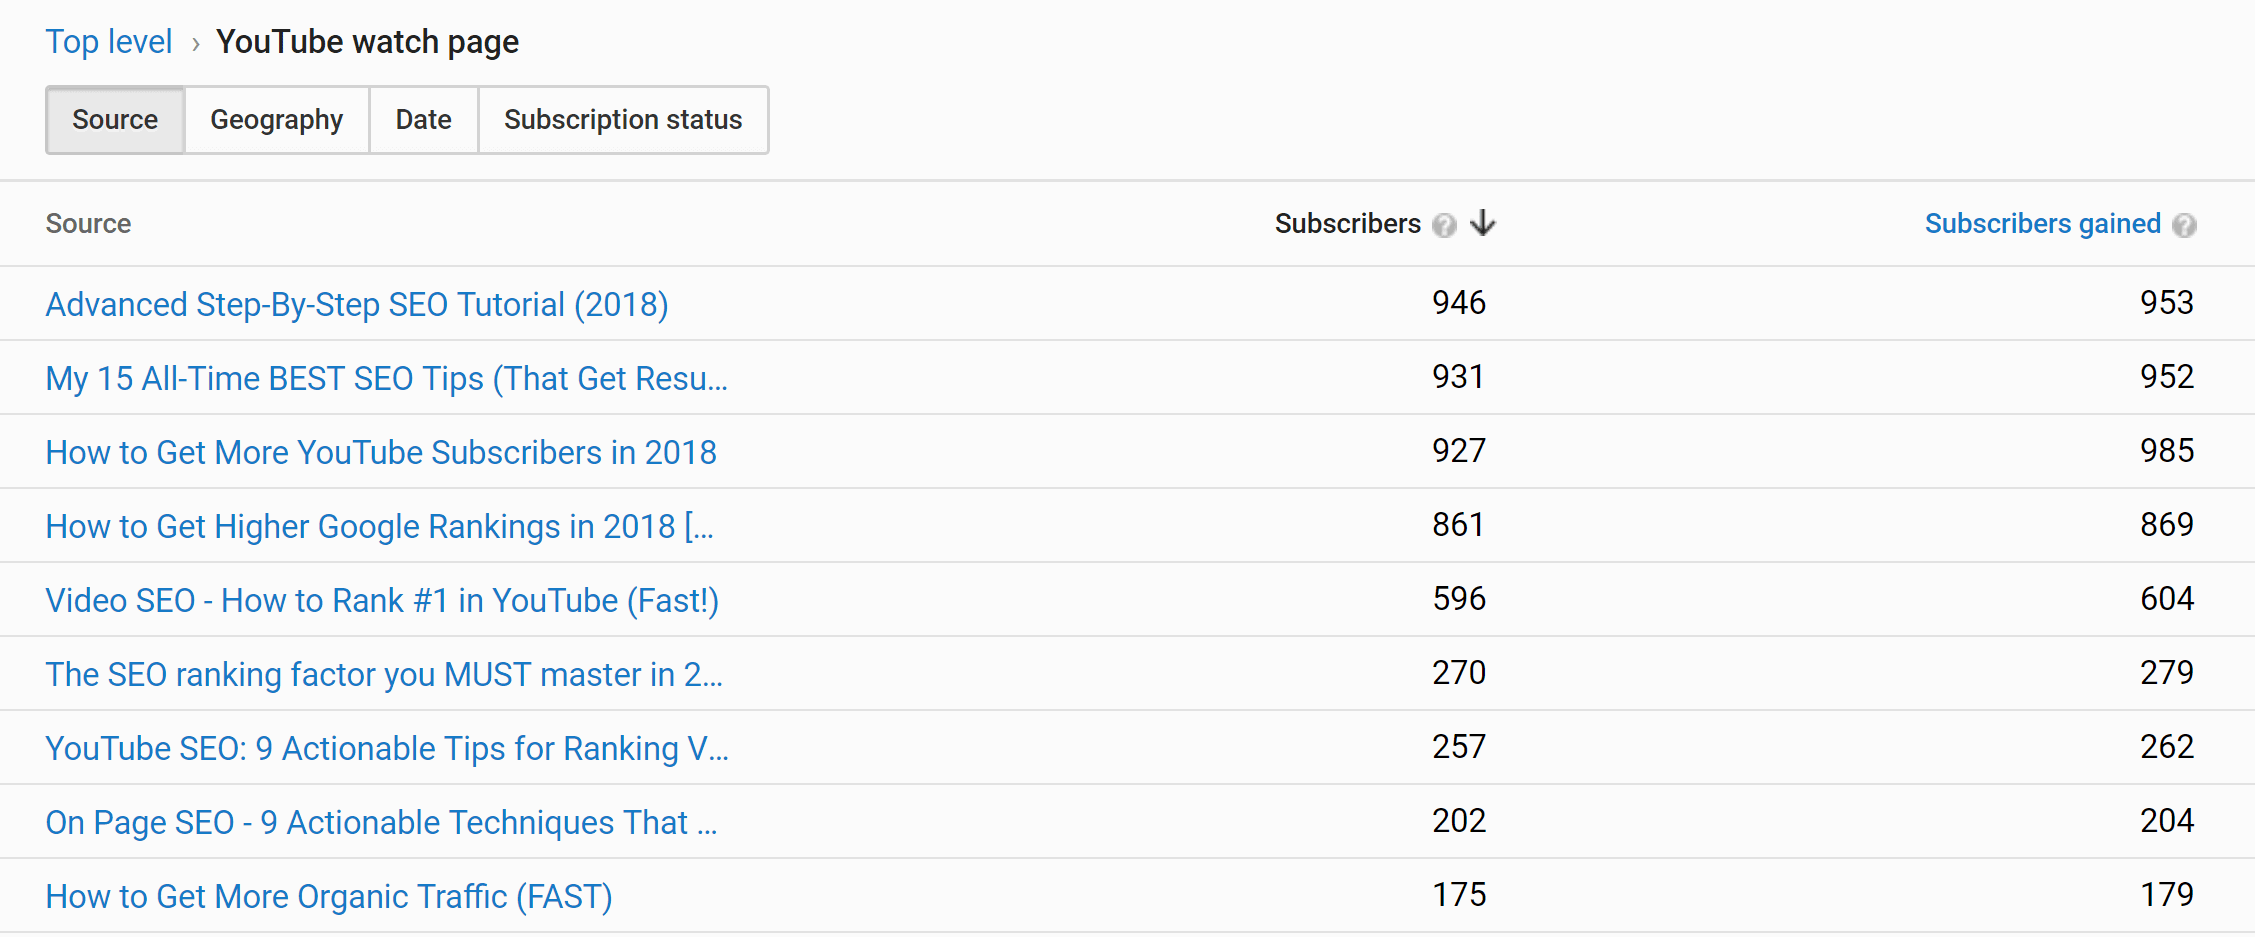 Viewers into subscribers